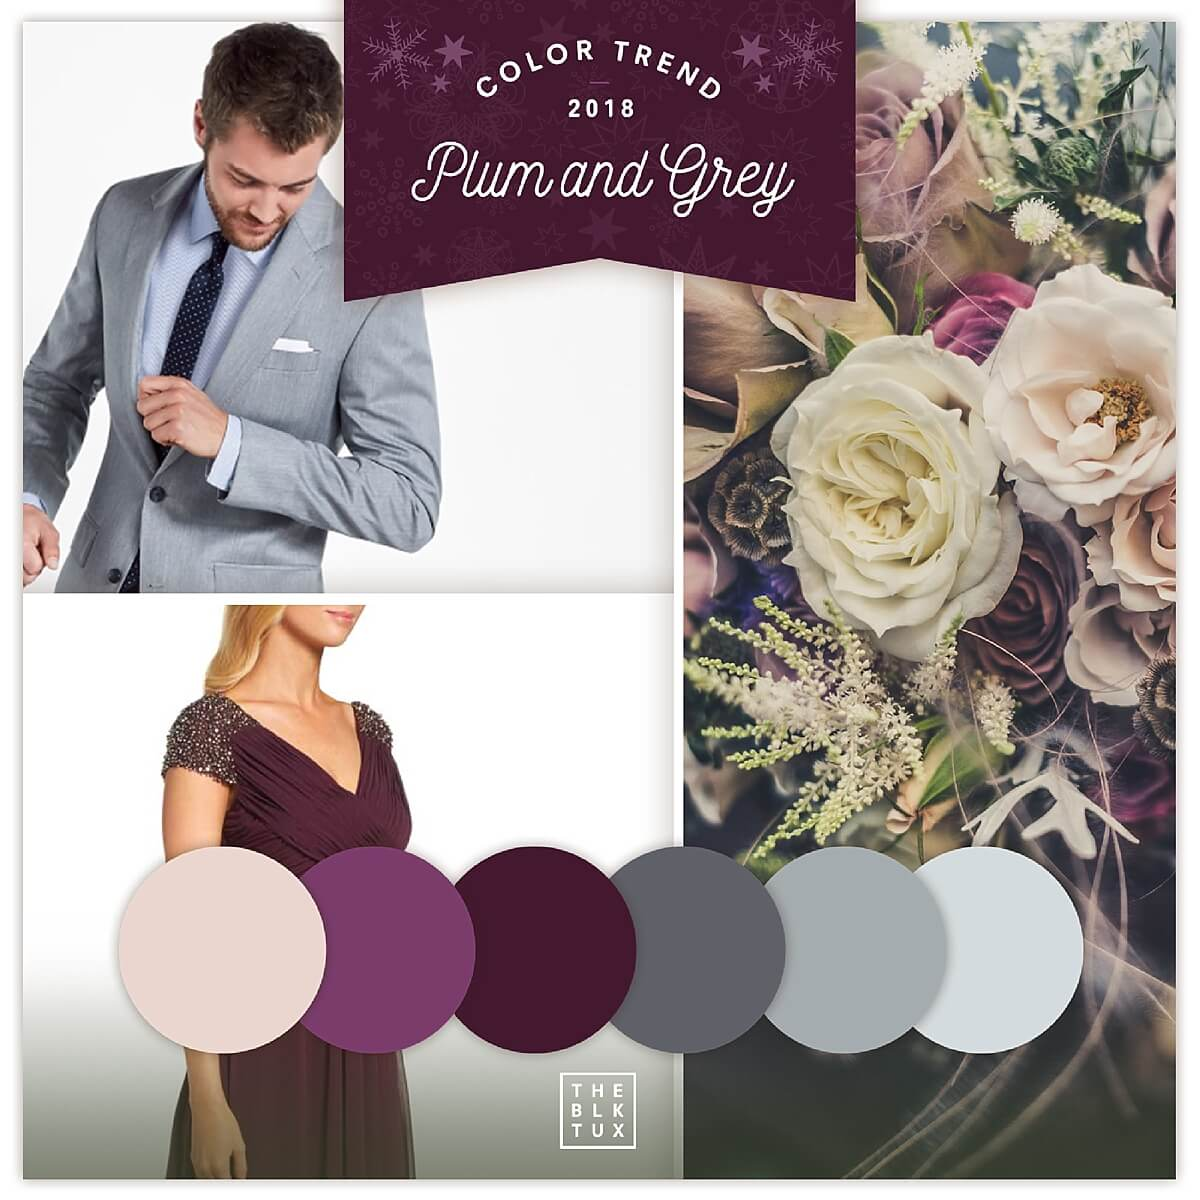 Winter wedding color palette - plum and grey